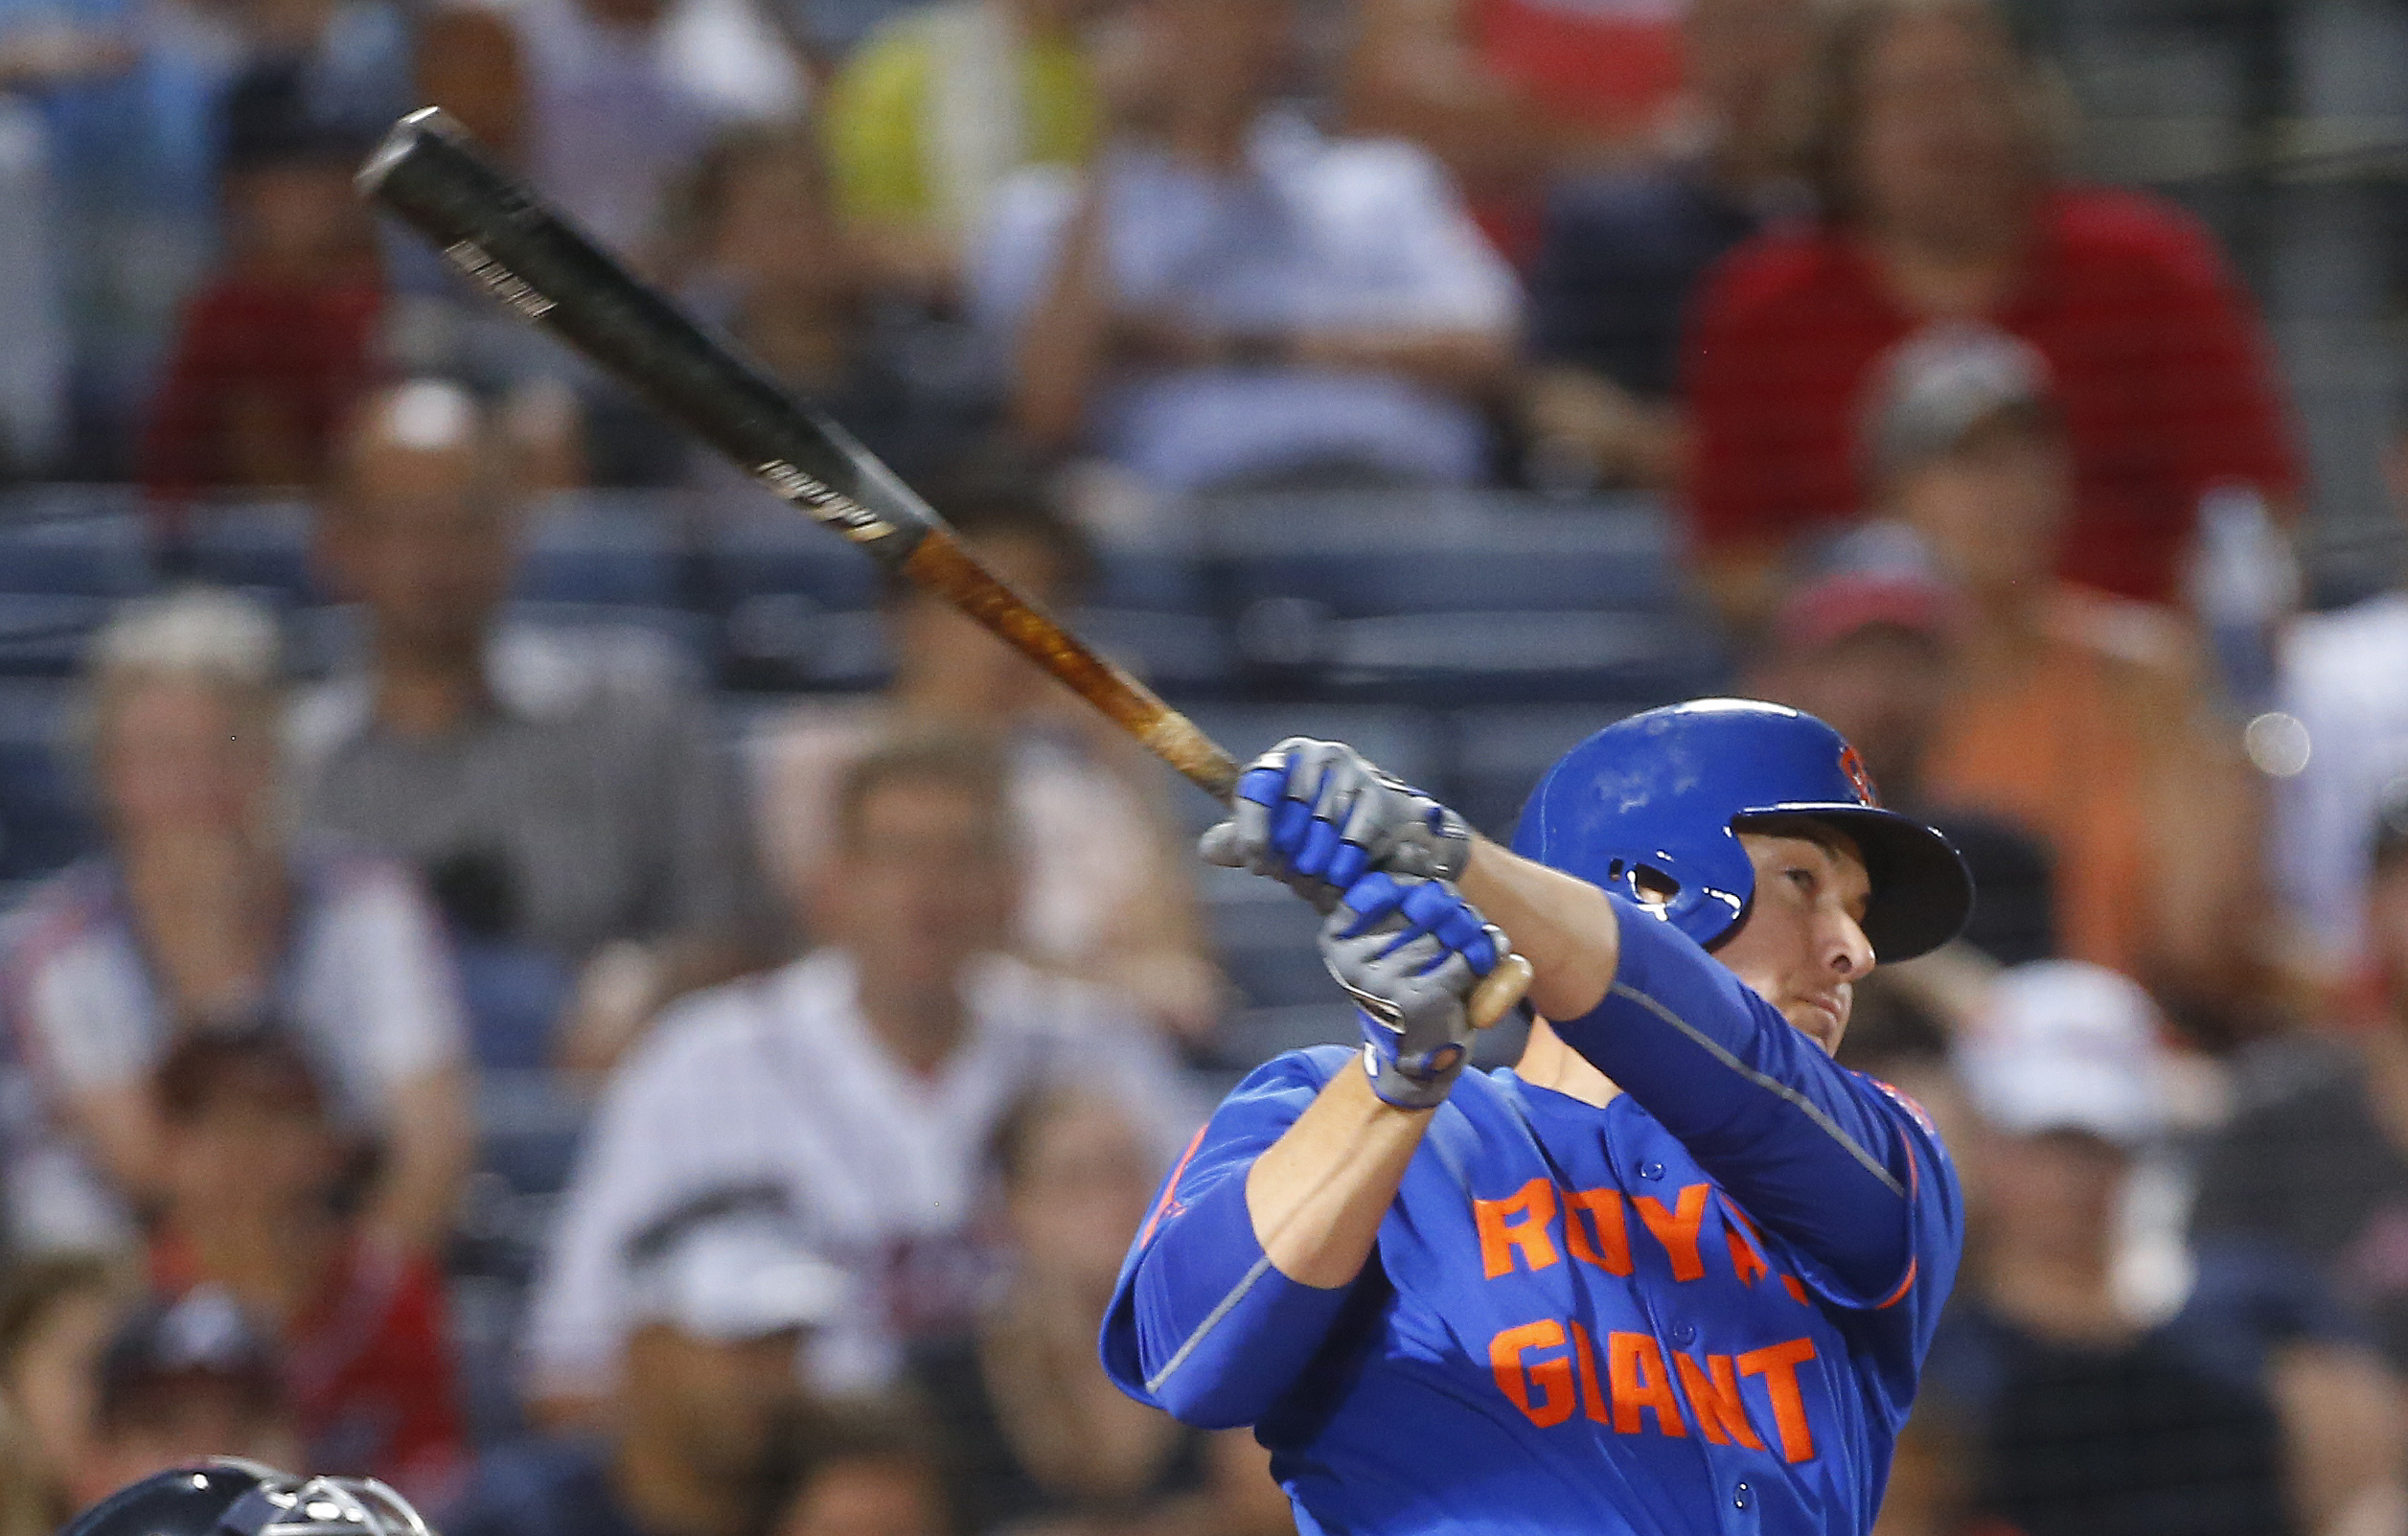 New York Mets pinch hitter Kelly Johnson follows through on a solo home run in the 11th inning of a baseball game against the Atlanta Braves, Saturday, June 25, 2016, in Atlanta. (AP Photo/John Bazemore)